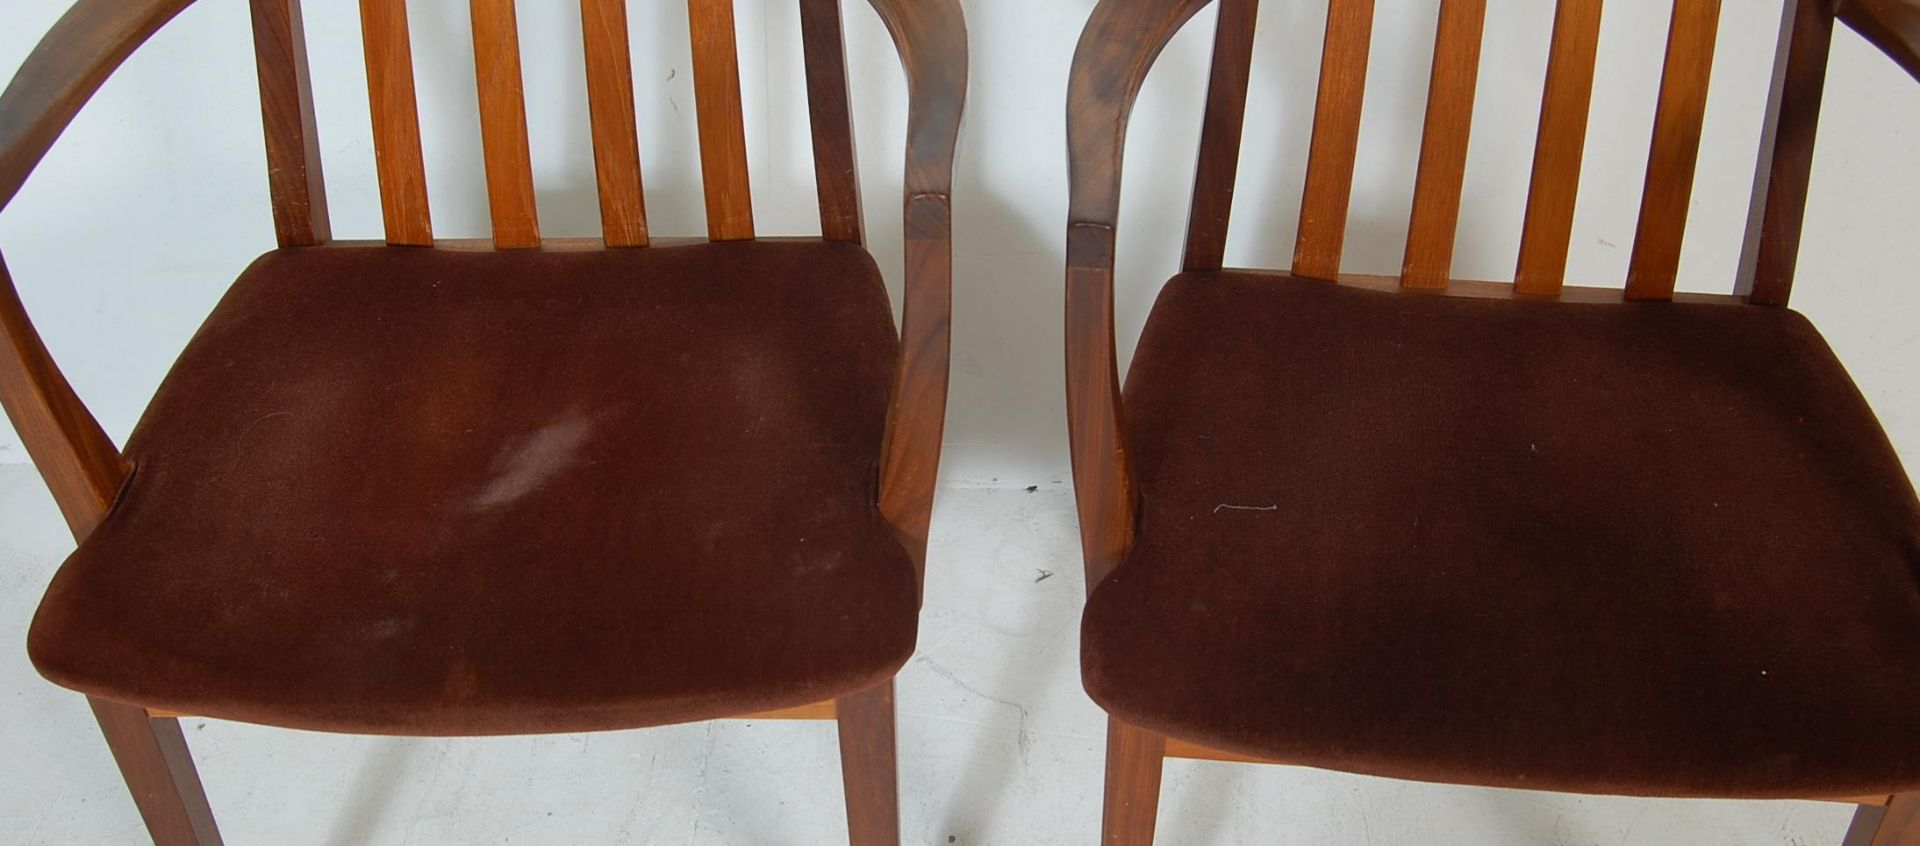 RETRO VINTAGE 1970S GPLAN DINING TABLE AND CHAIRS - Image 9 of 12